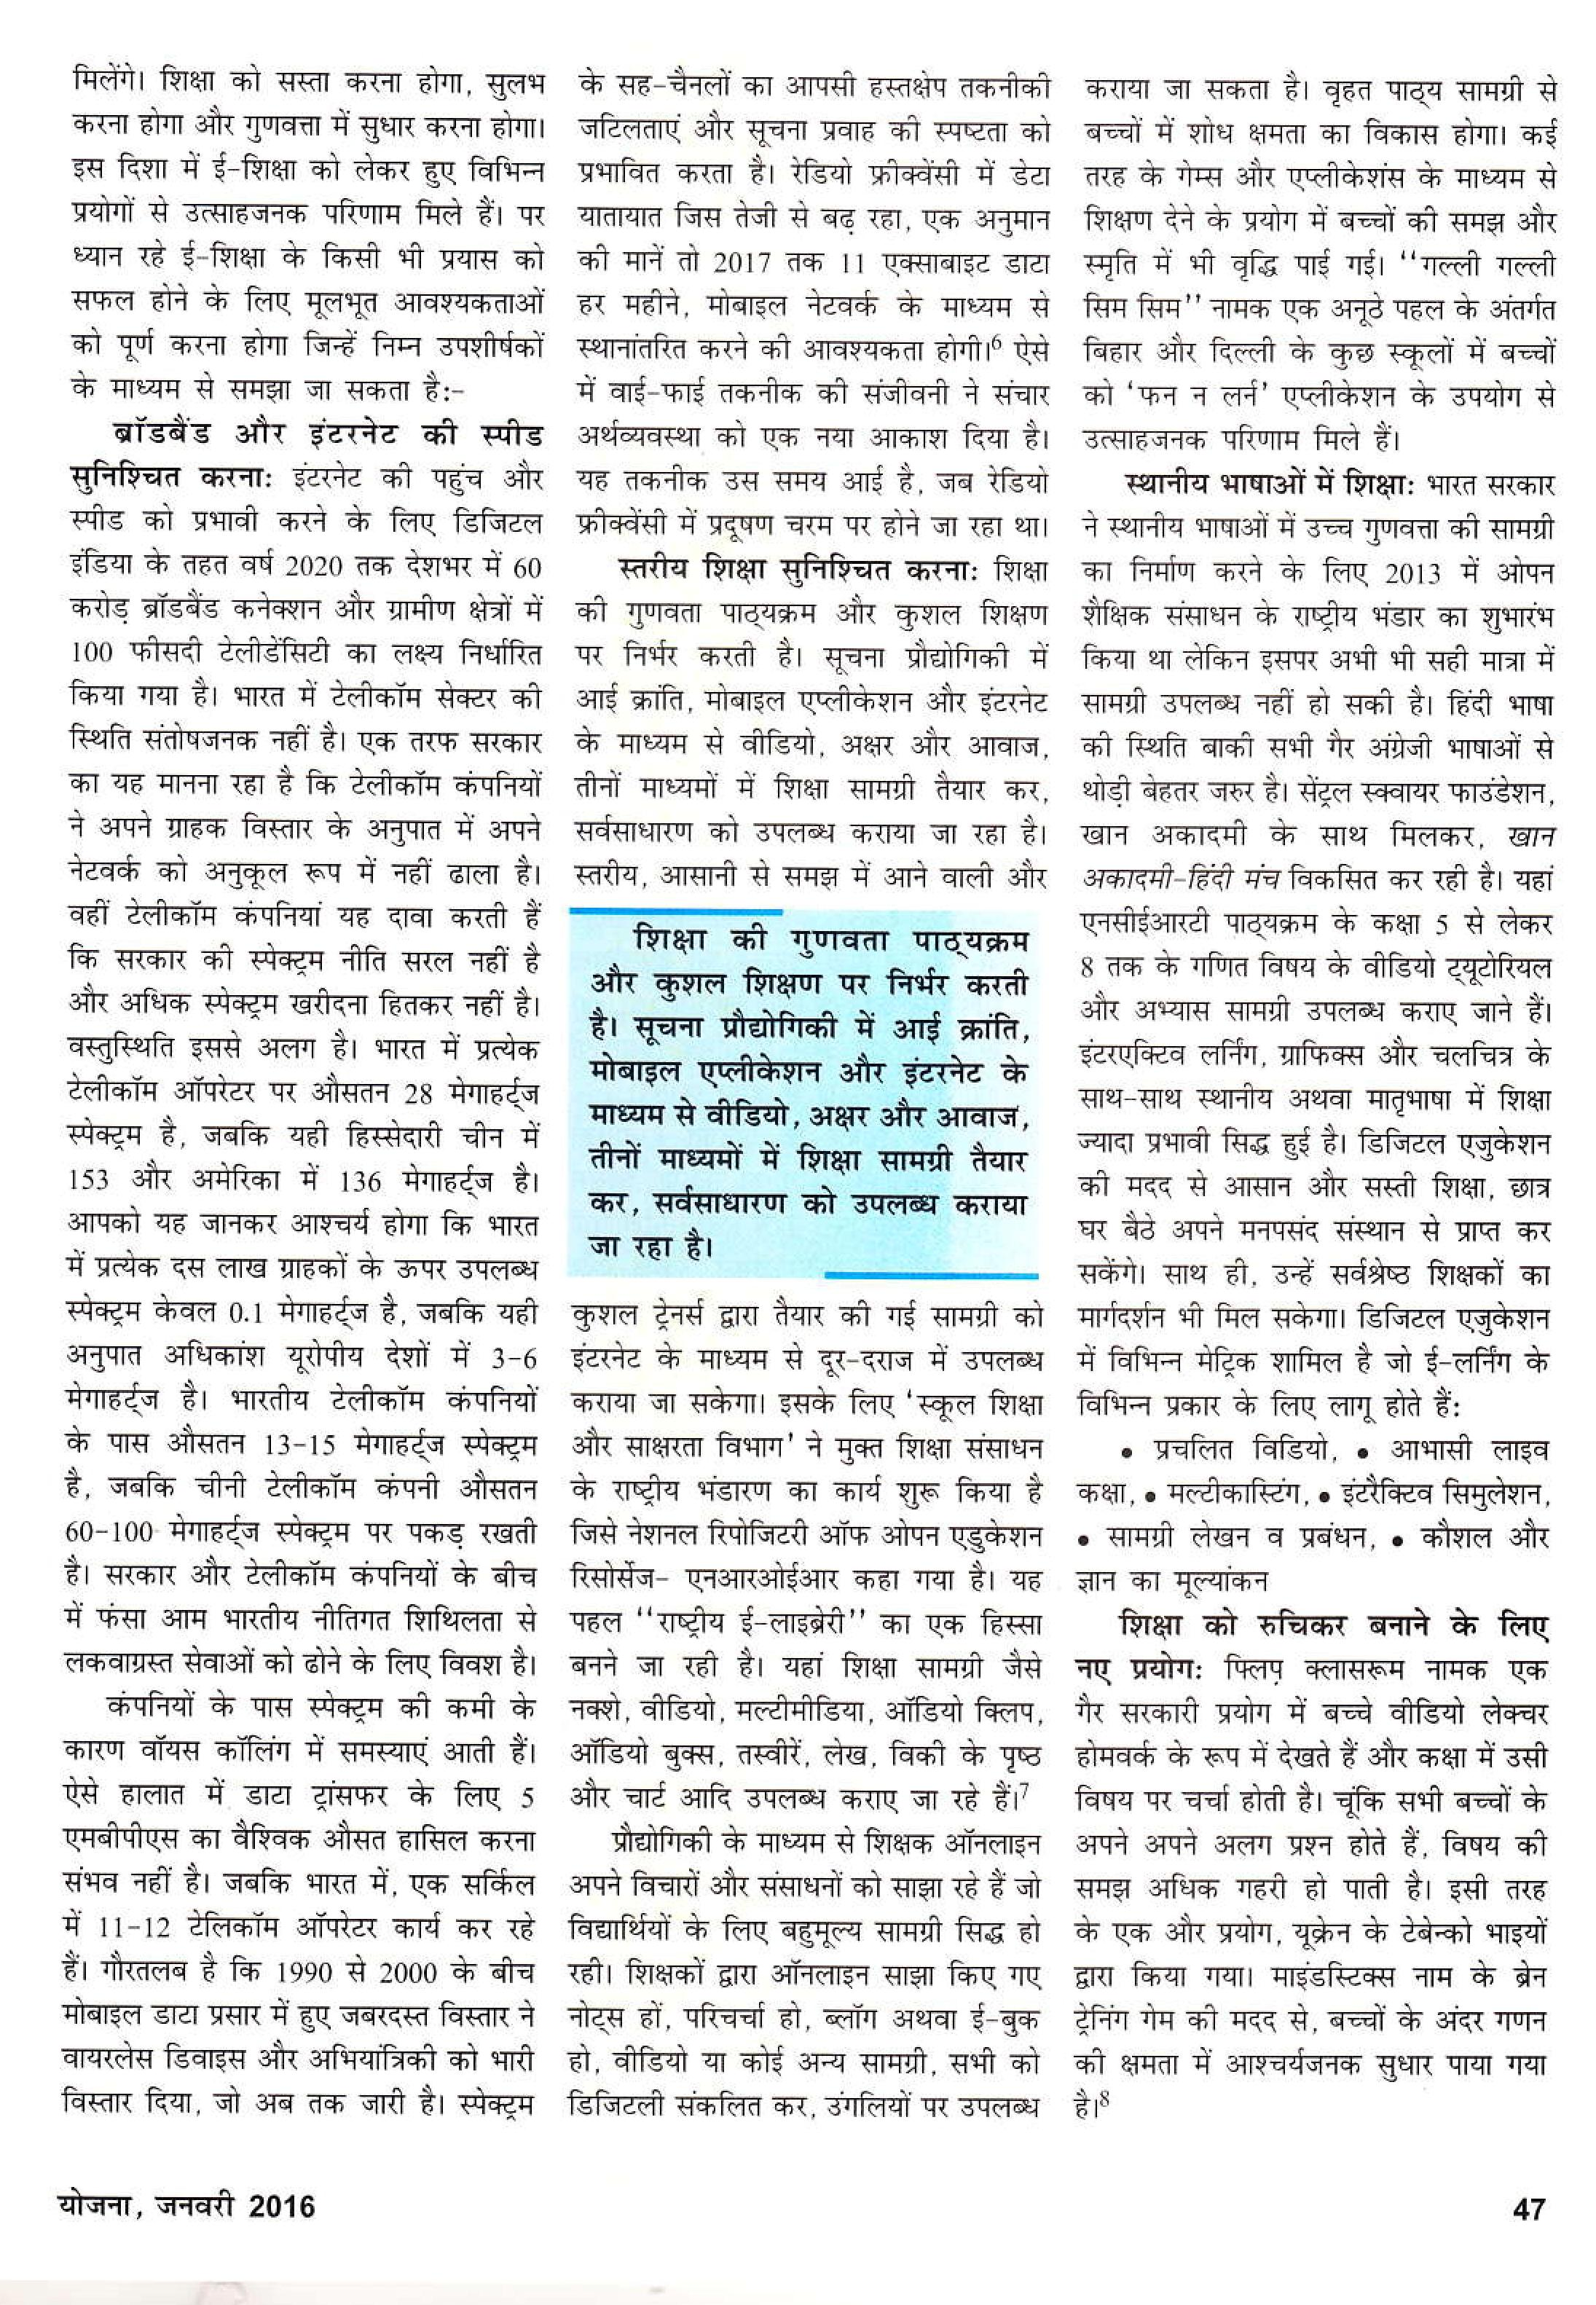 IMG_0002-page-003